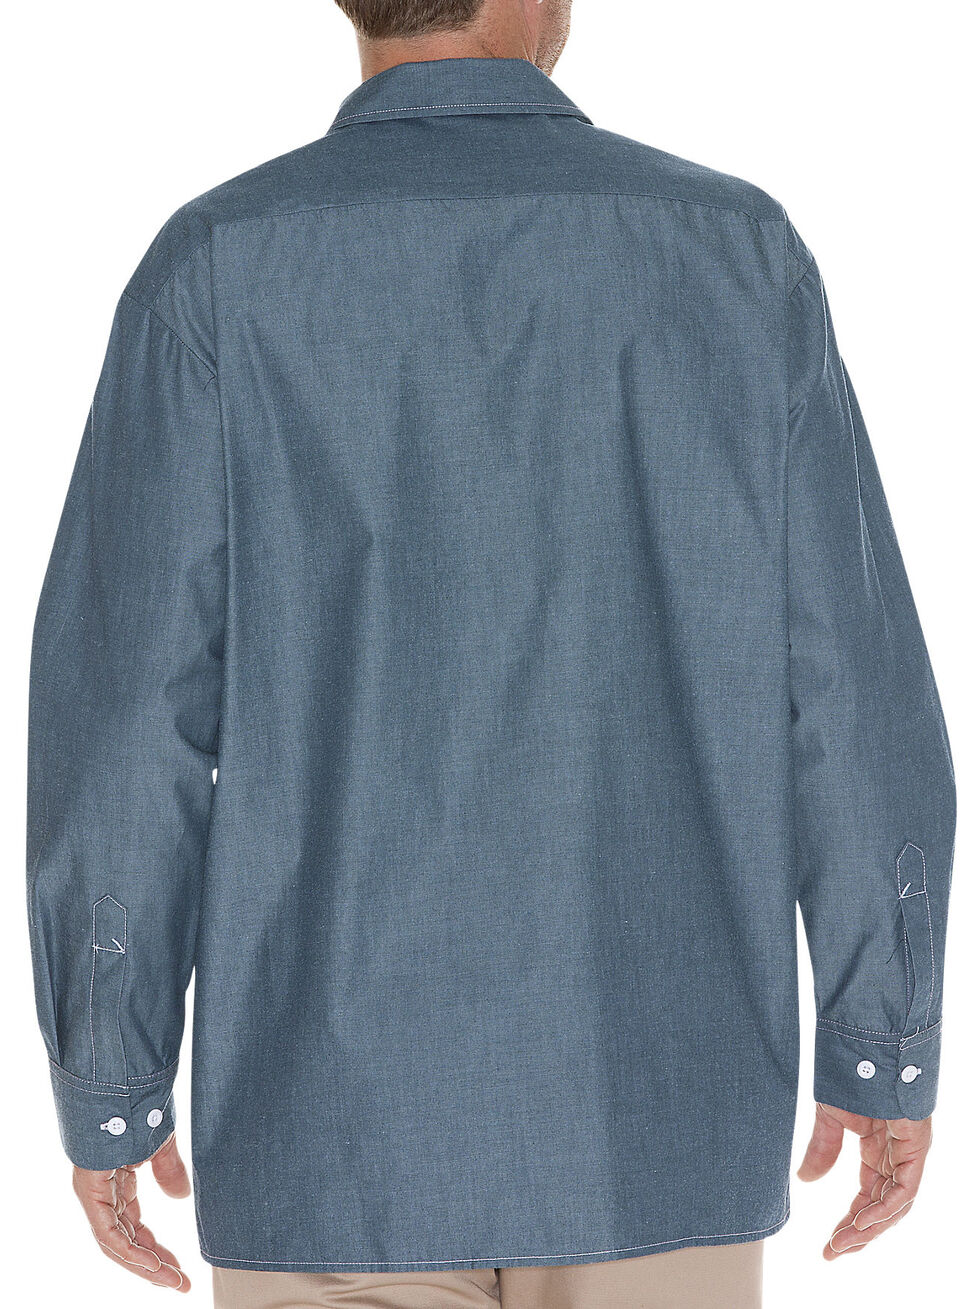 Dickies Relaxed Fit Chambray Long Sleeve Shirt, Blue, hi-res